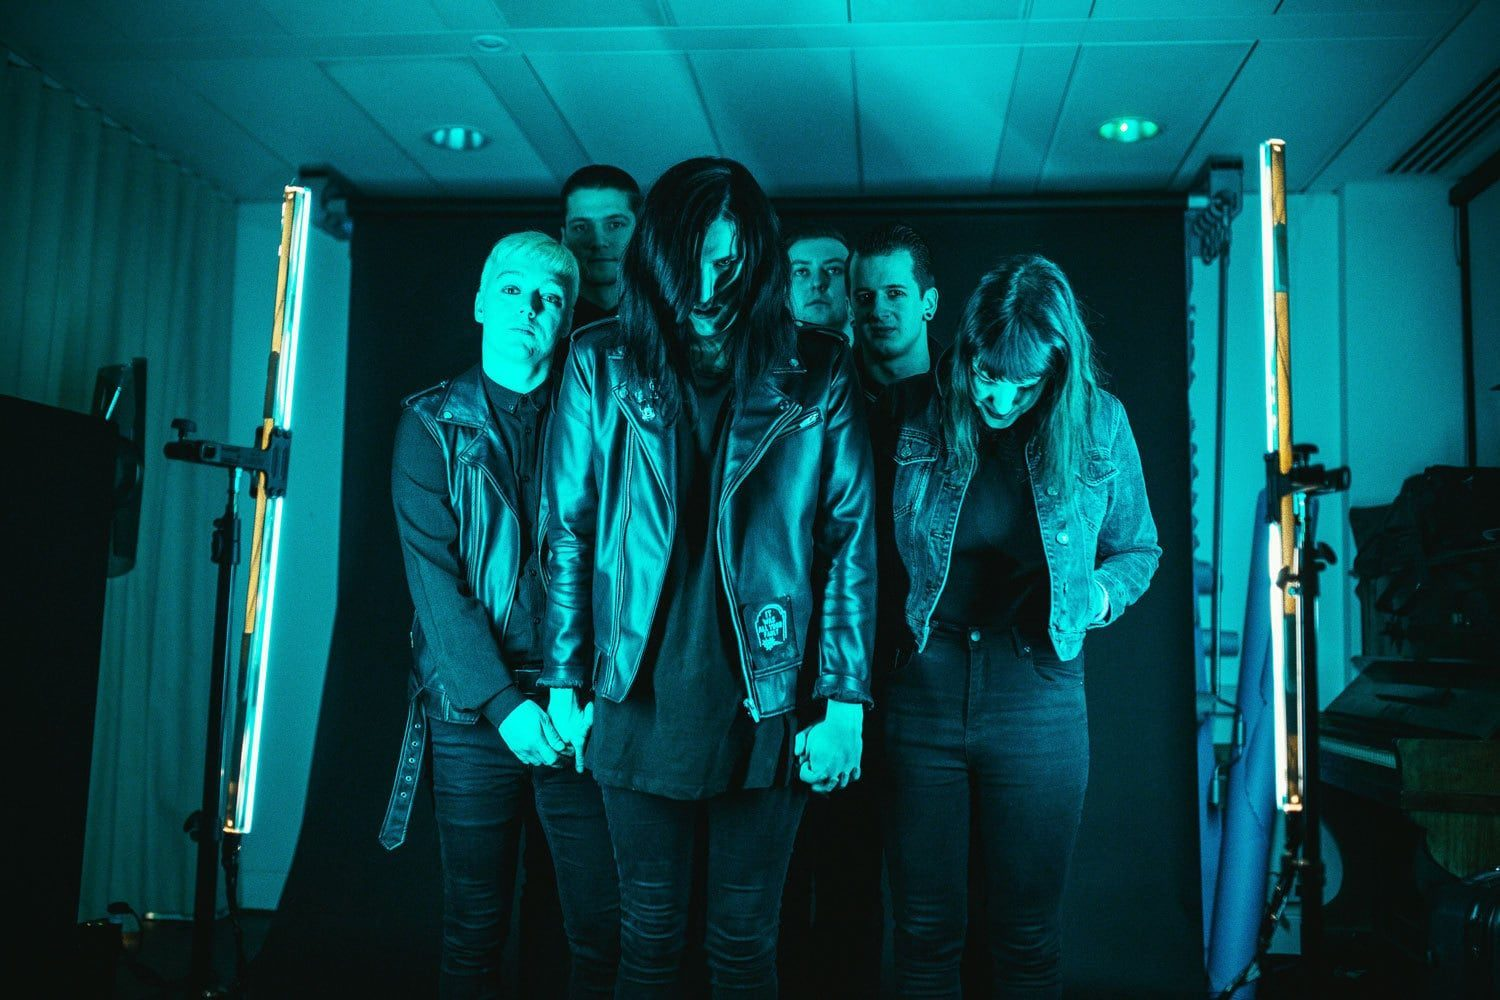 Listen to 'Black Rain', Creeper's latest and greatest, right now